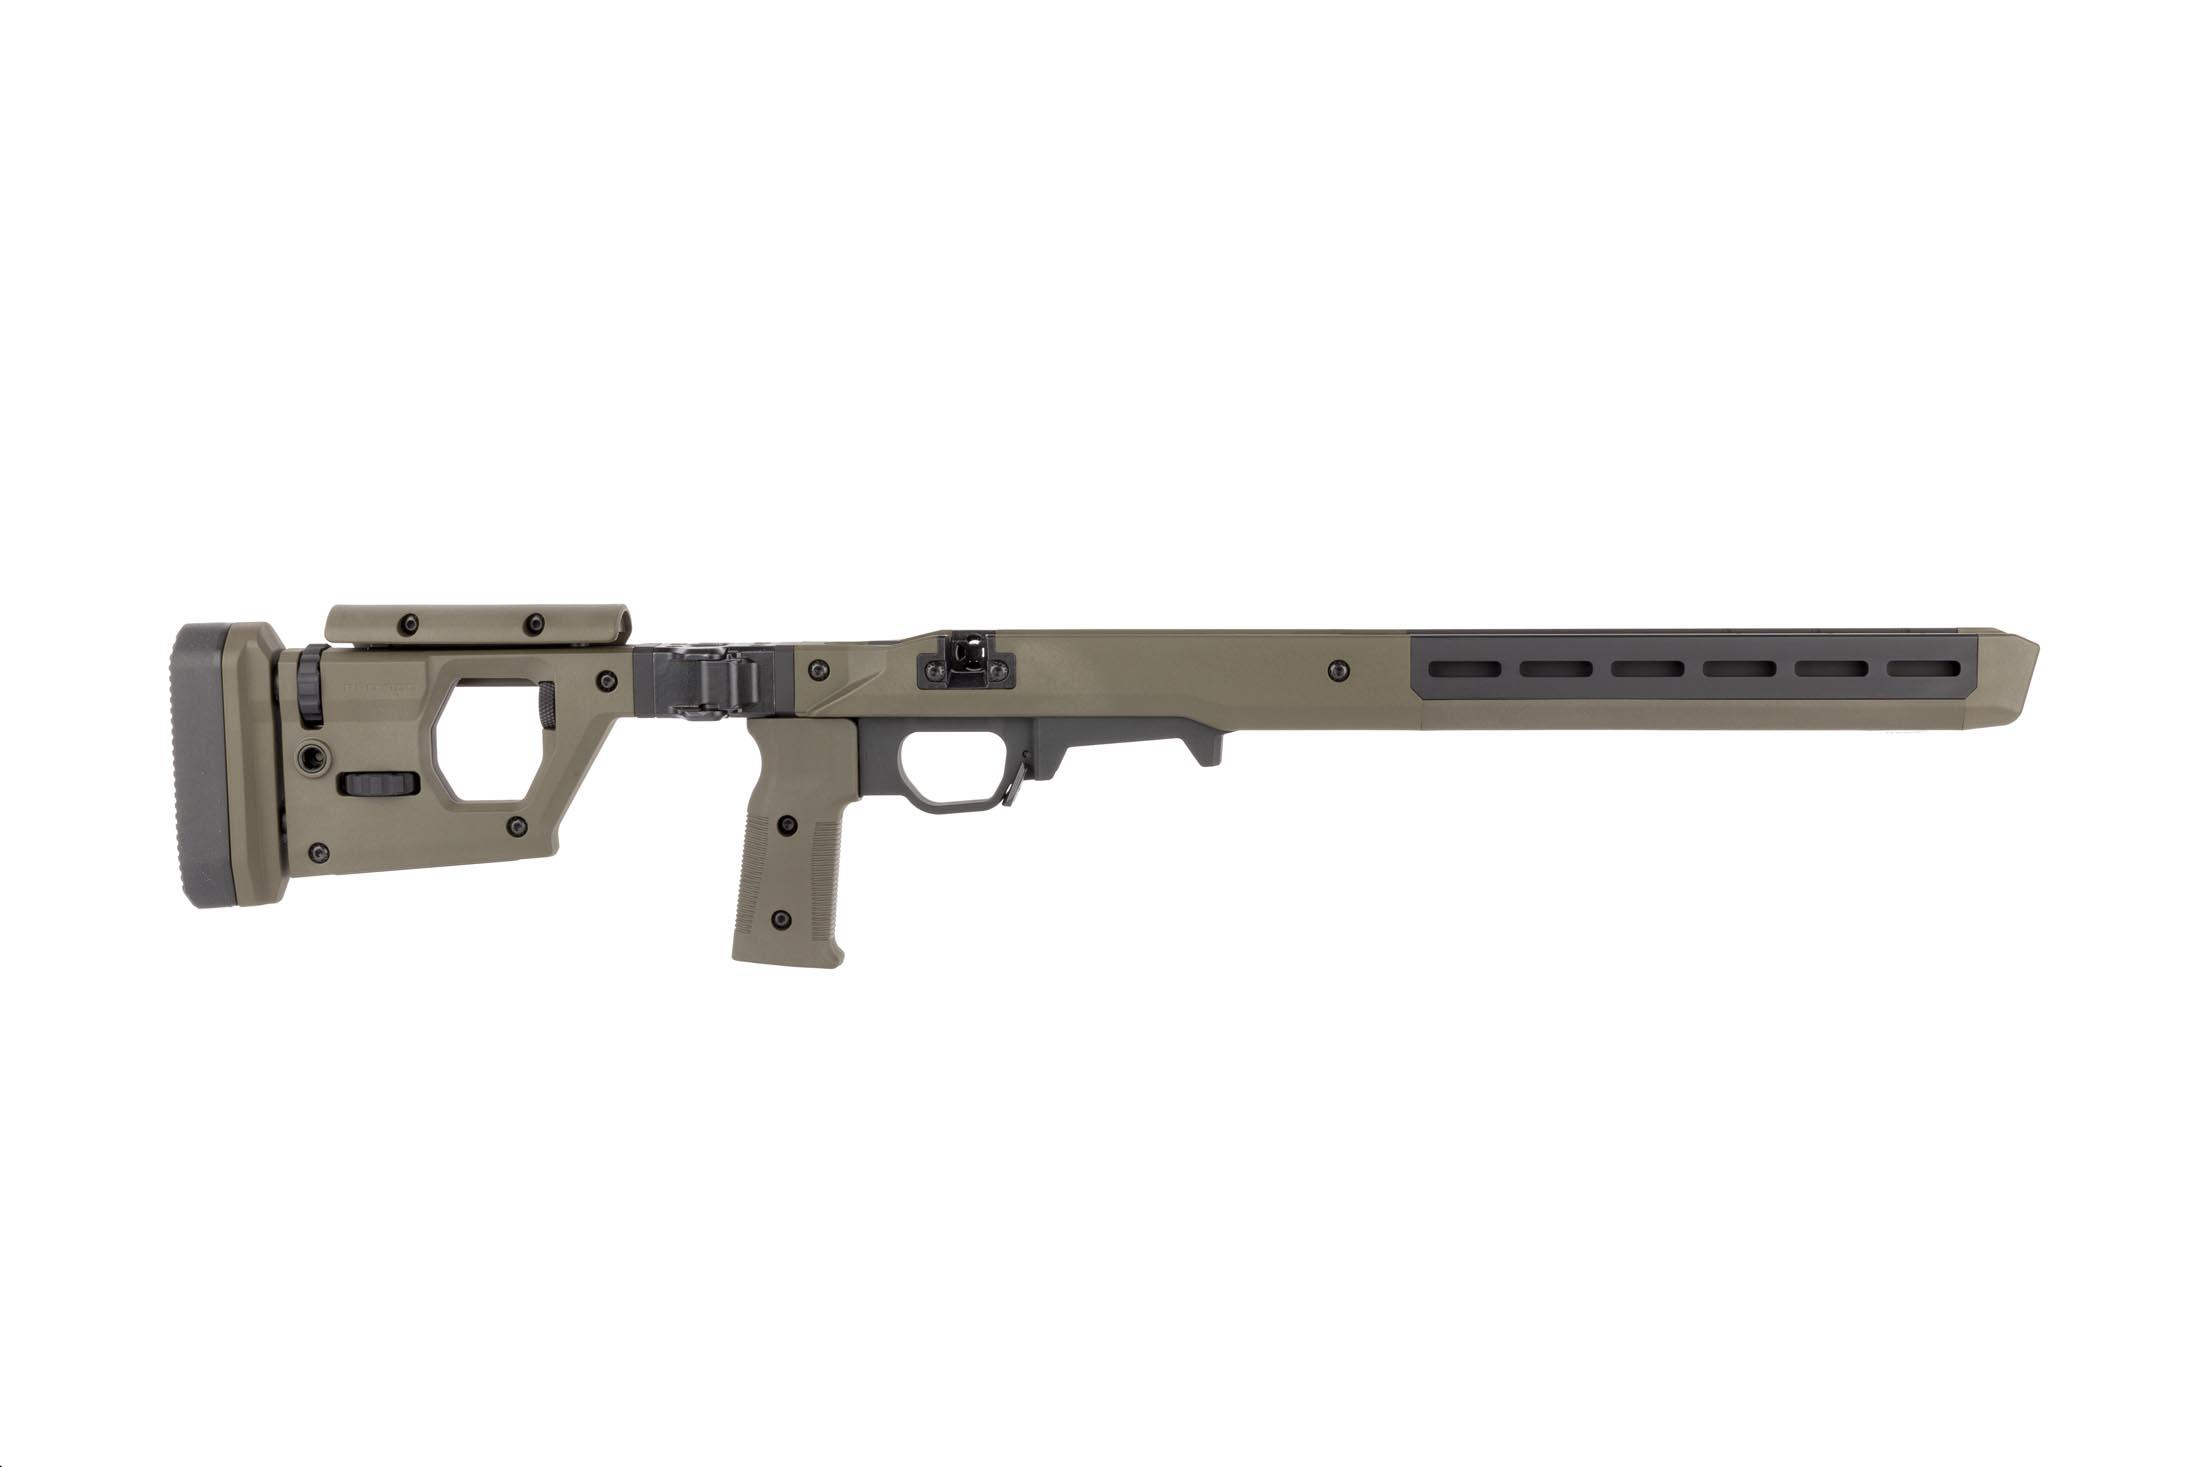 Magpul olive drab green PRO 700 rifle chassis features adjustable comb and length of pull on the folding stock.